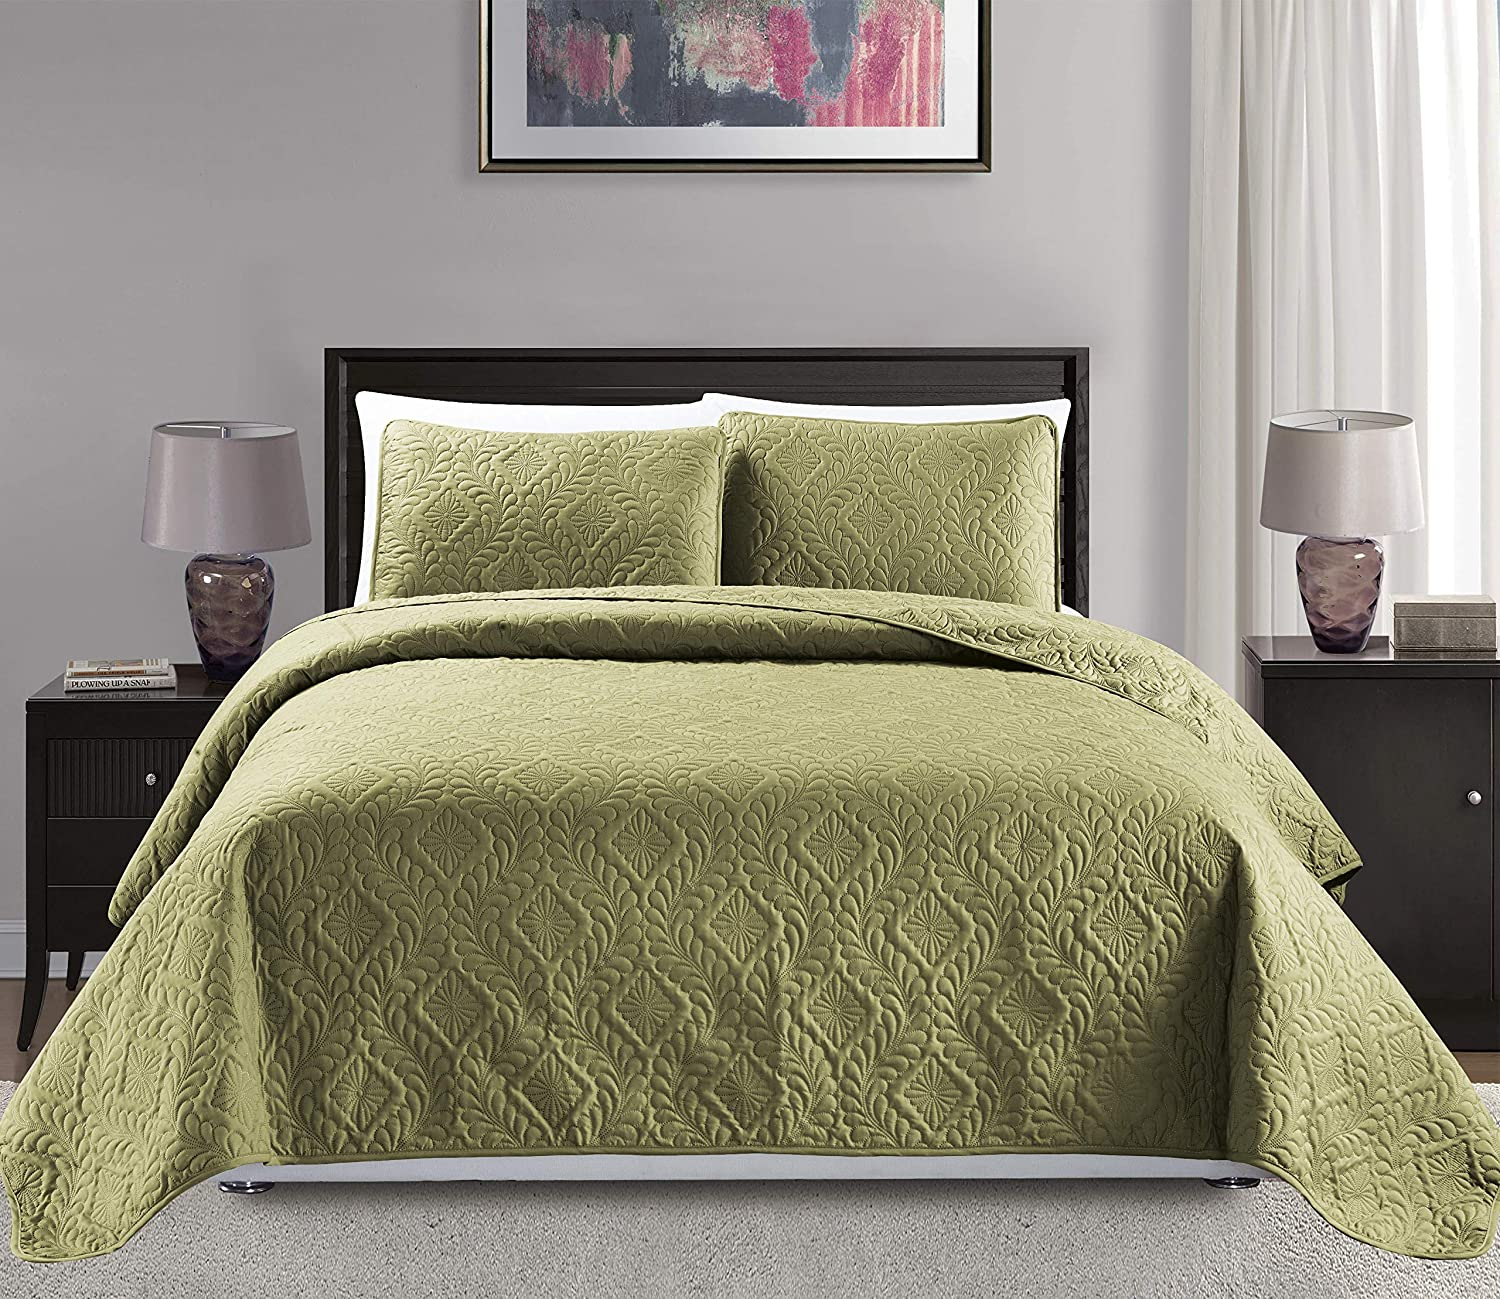 Fancy store Collection Max 90% OFF 3pc King Oversize Cov Bedspread California